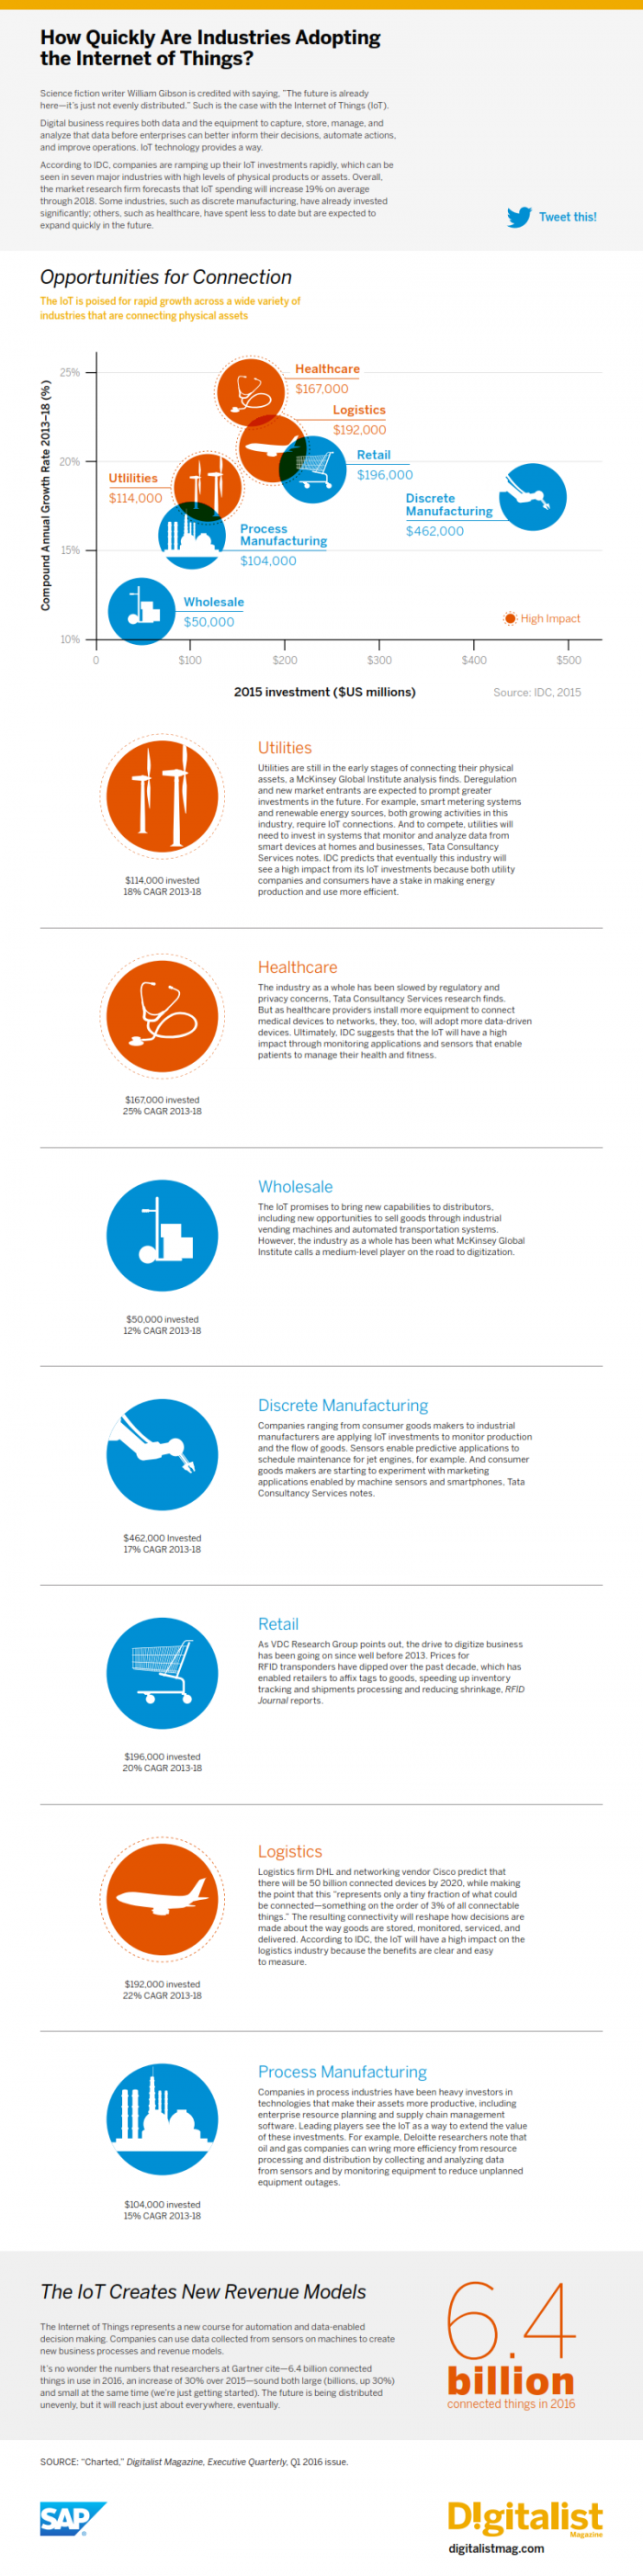 Infographic_Industries Adopting IoT_Final social_001